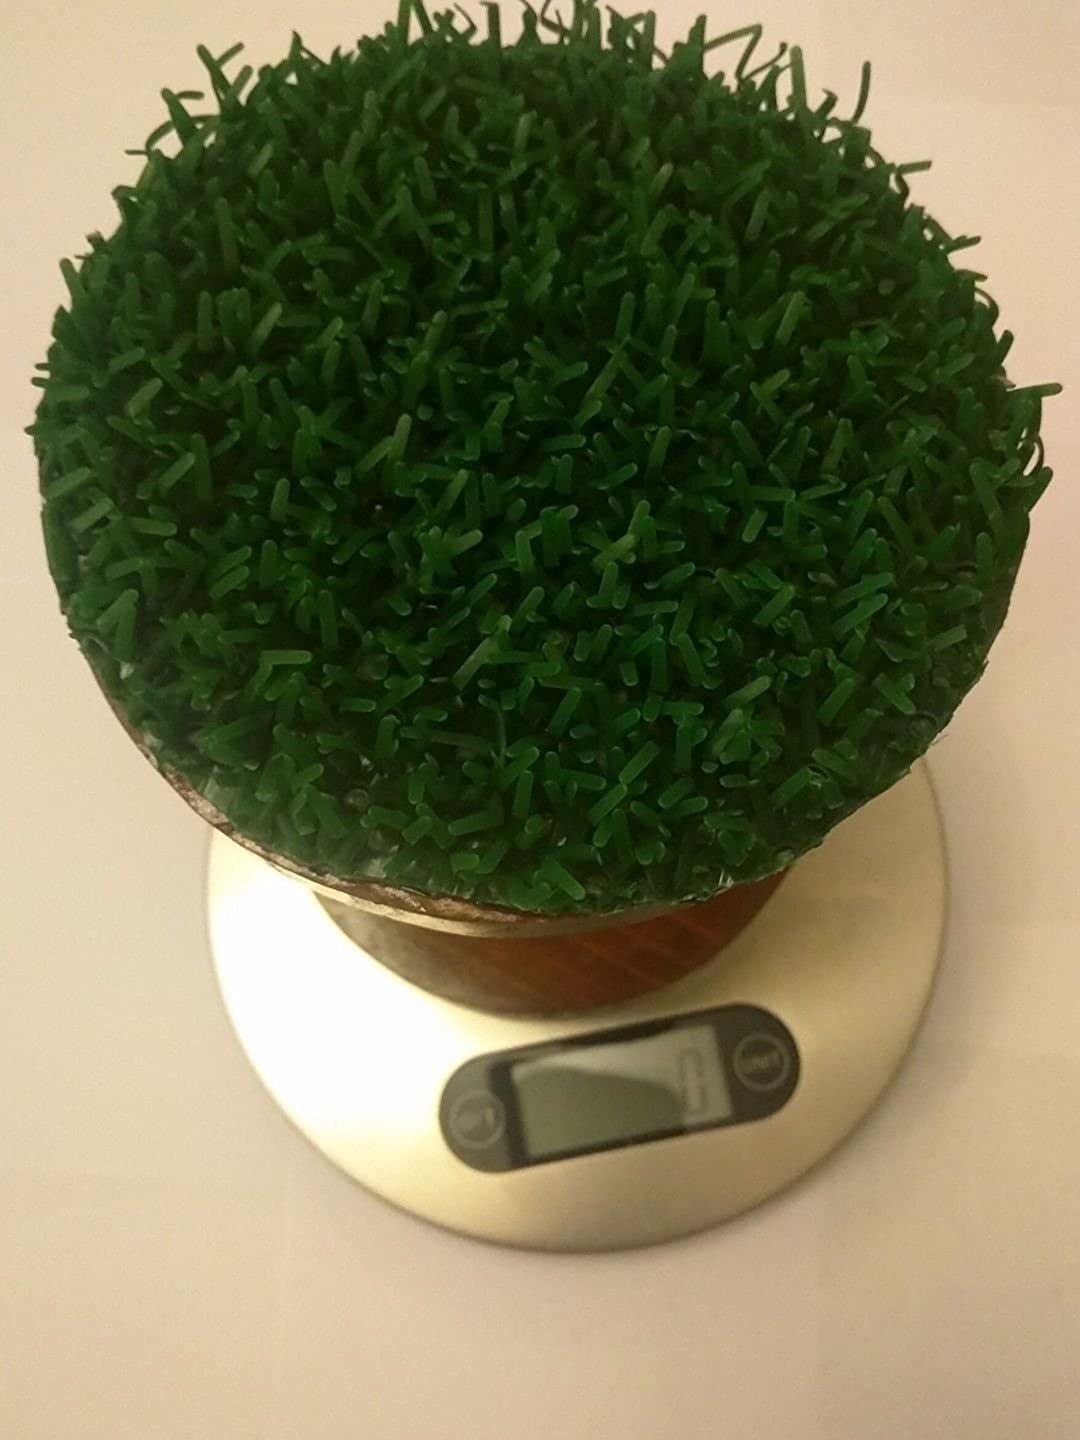 Falconry Digital Scale Made with Original Astroruf Unbranded Does Not Apply